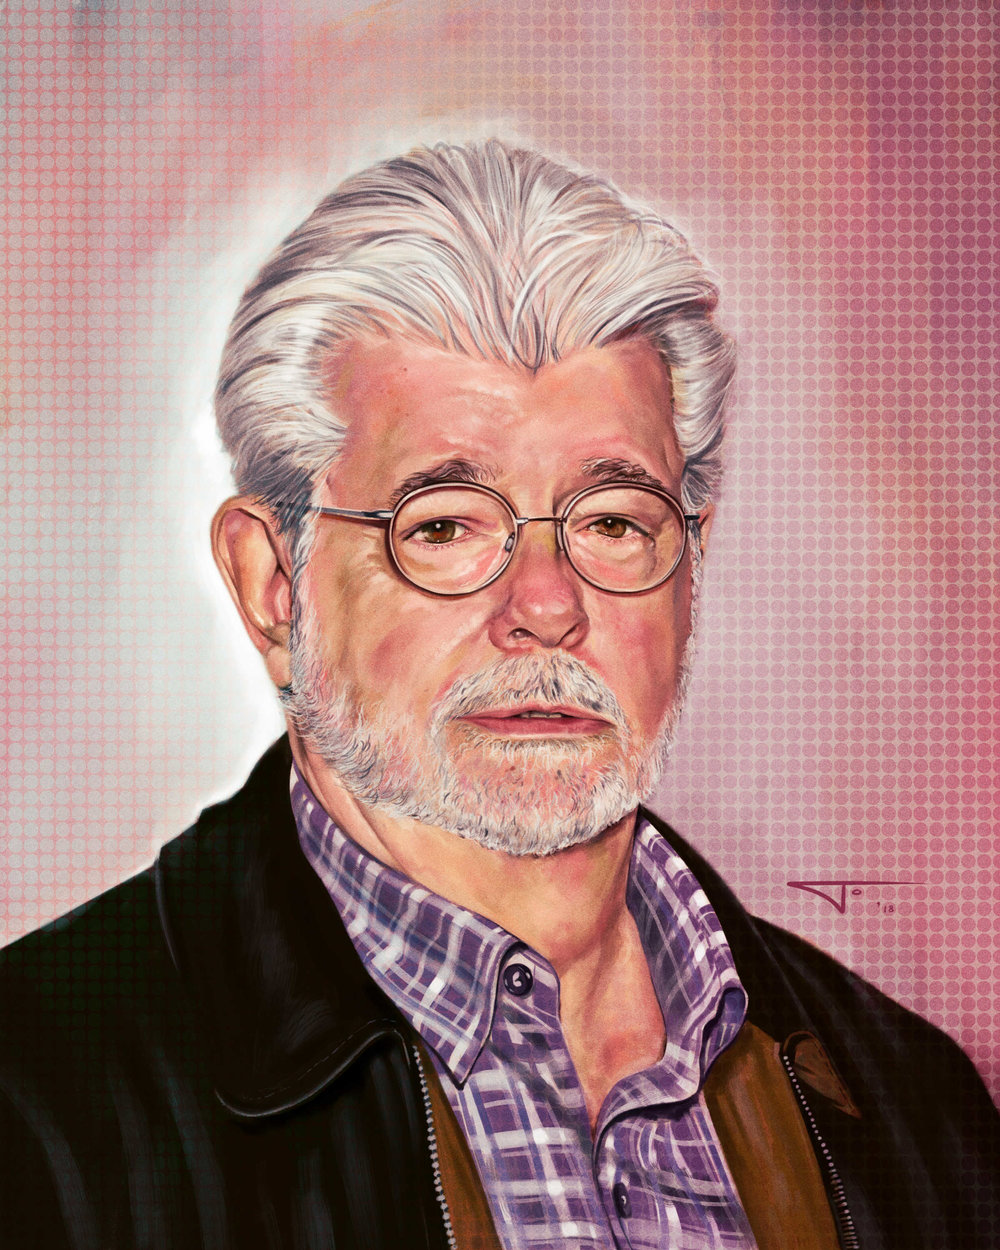 George Lucas Low-Res.jpg